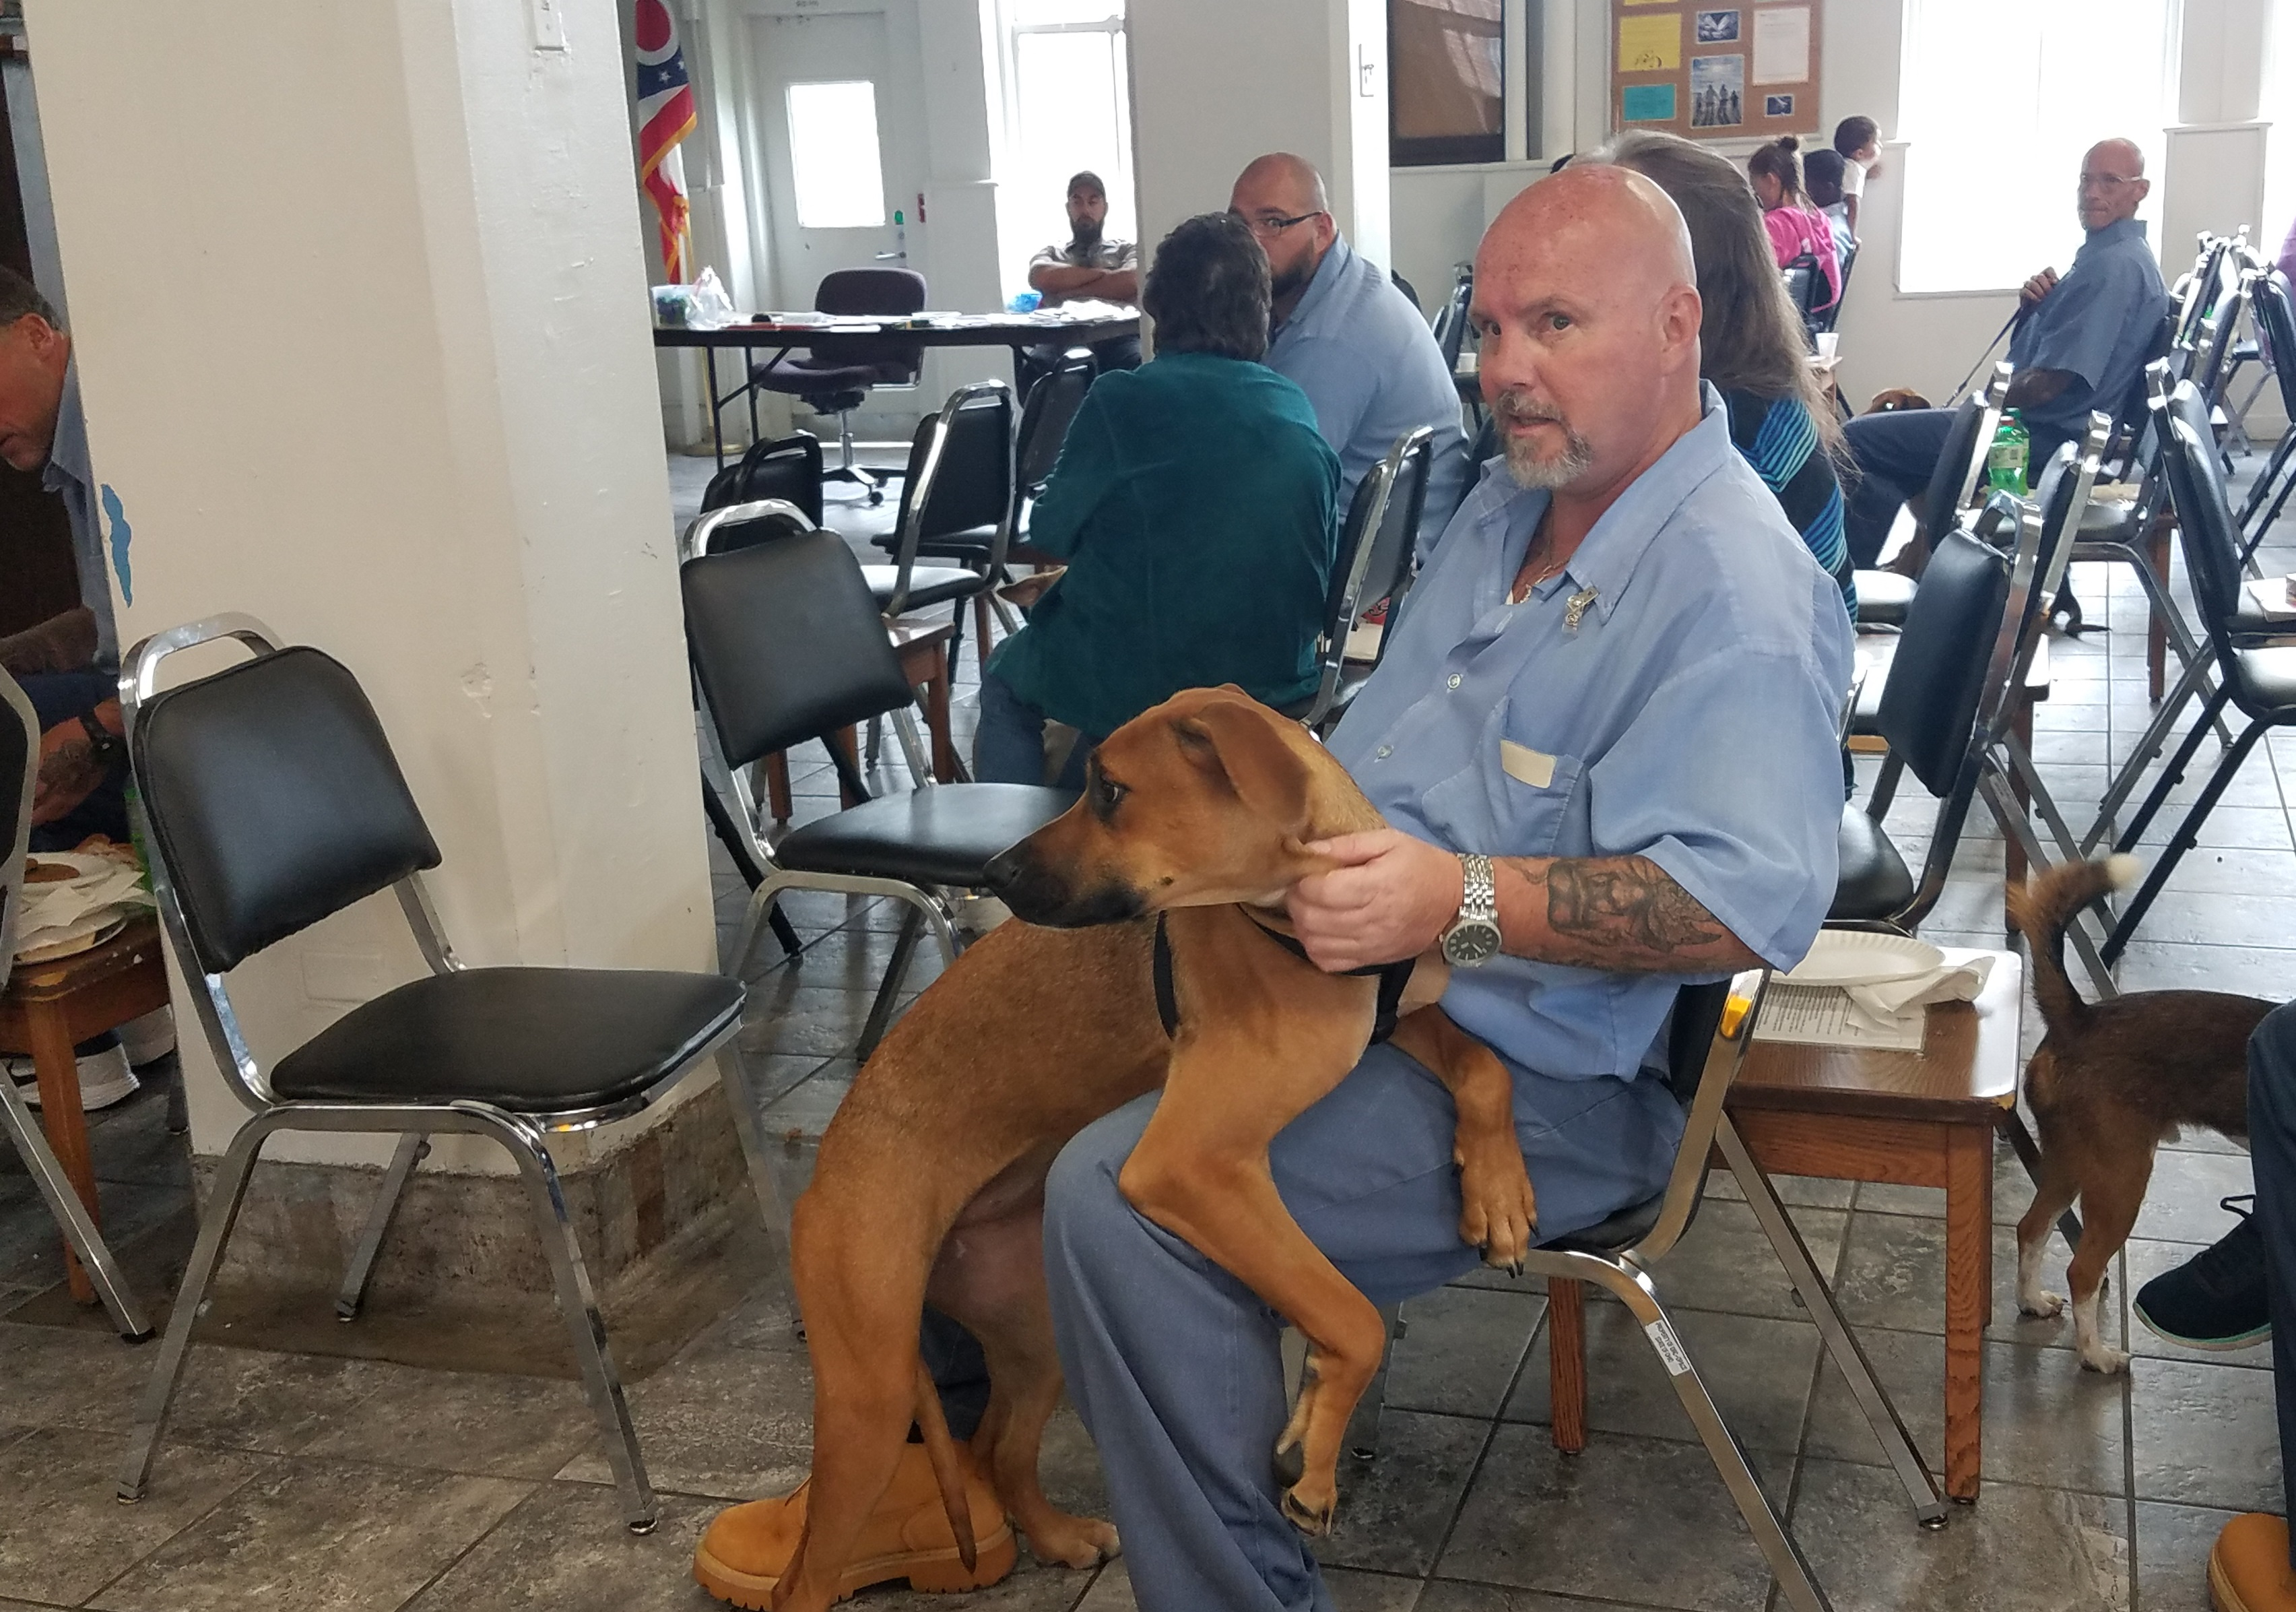 CCI's Annual Canine Handler Family Day